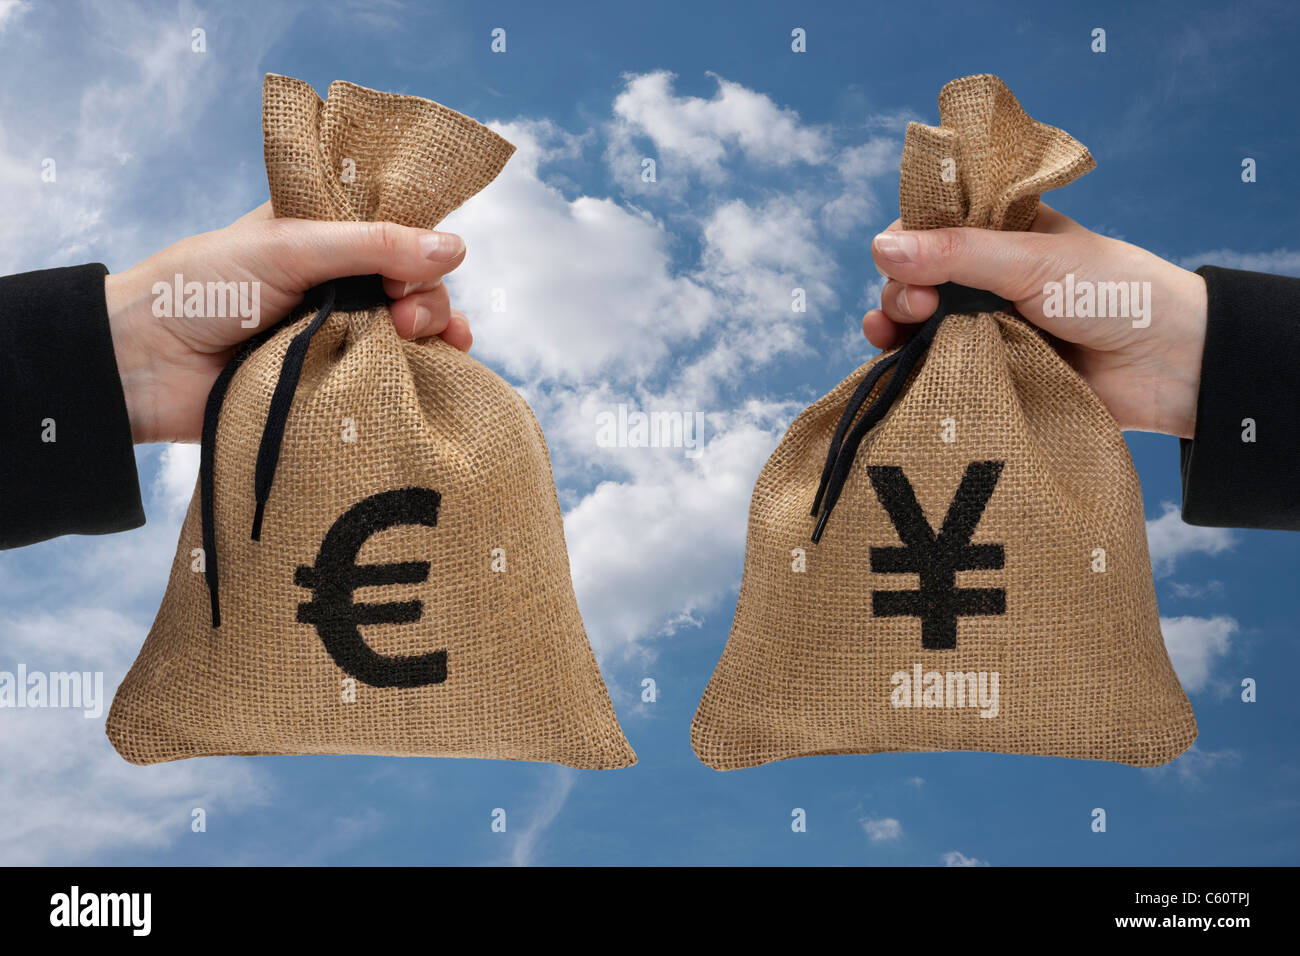 a money bag with euro sign and a money bag with yen sign are hand-held - Stock Image